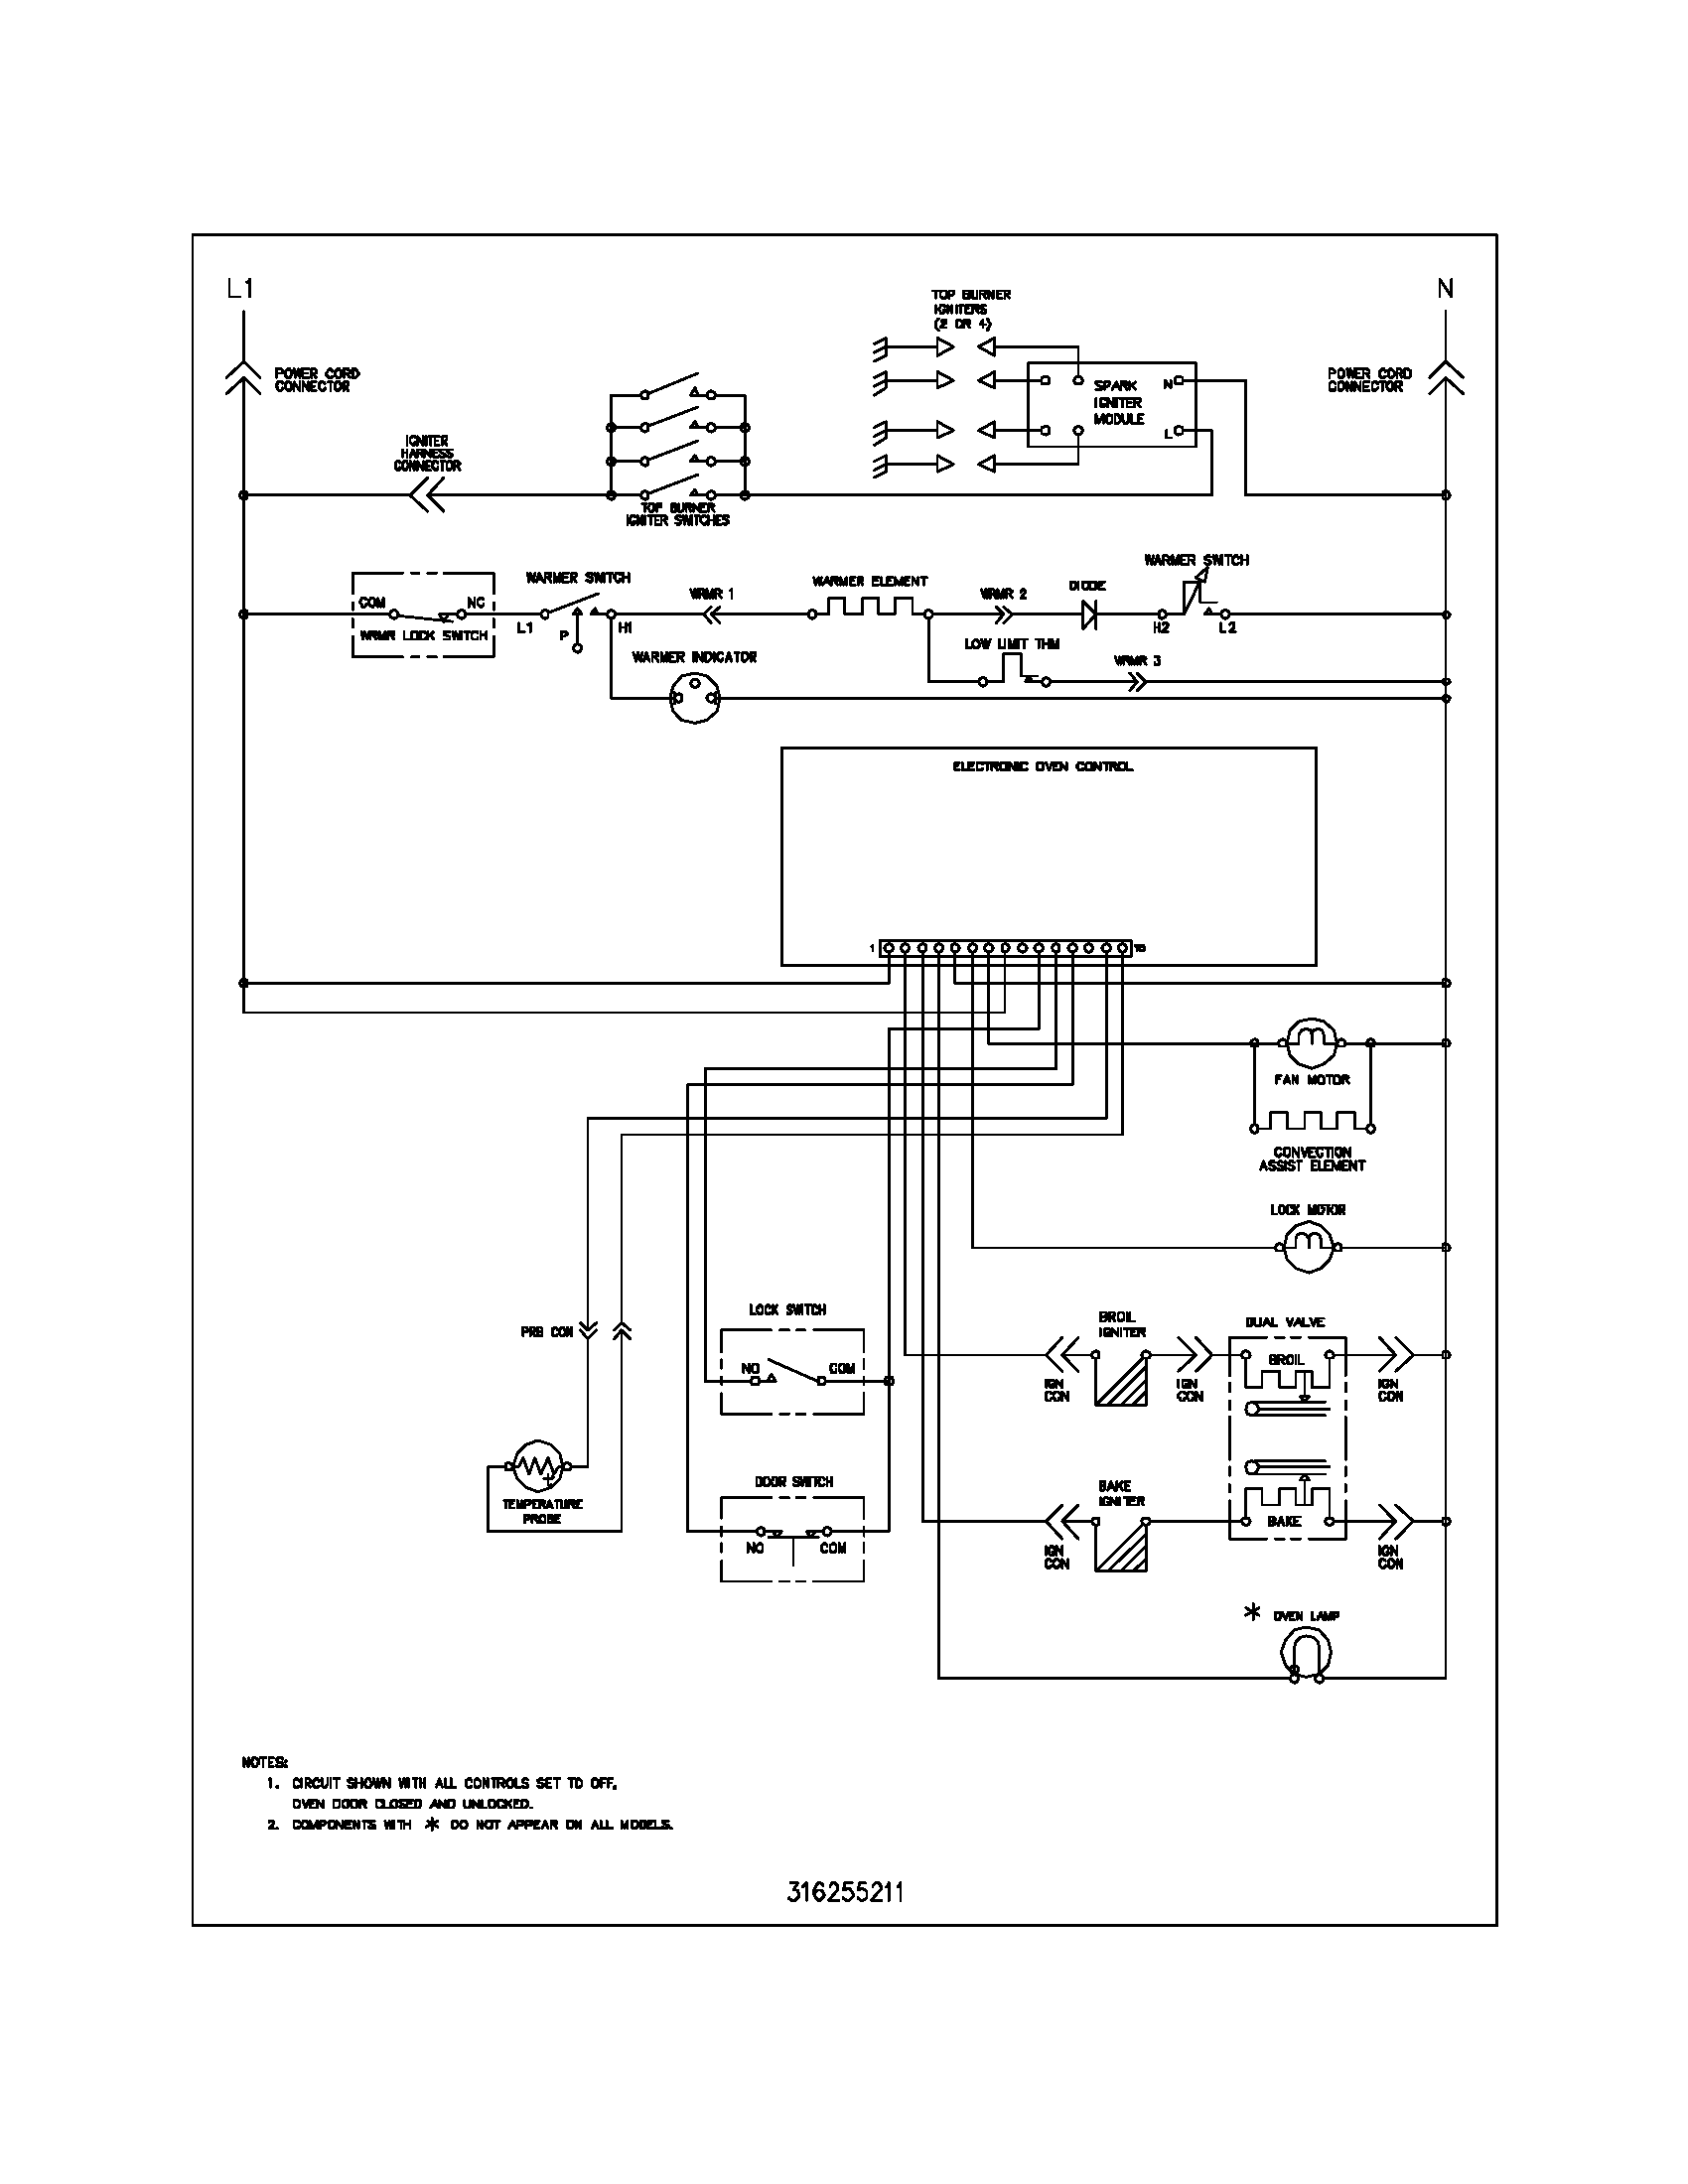 gas wiring diagram gas fireplace wiring diagram gas image wiring diagram gas fireplace thermostat wiring junsa us on gas